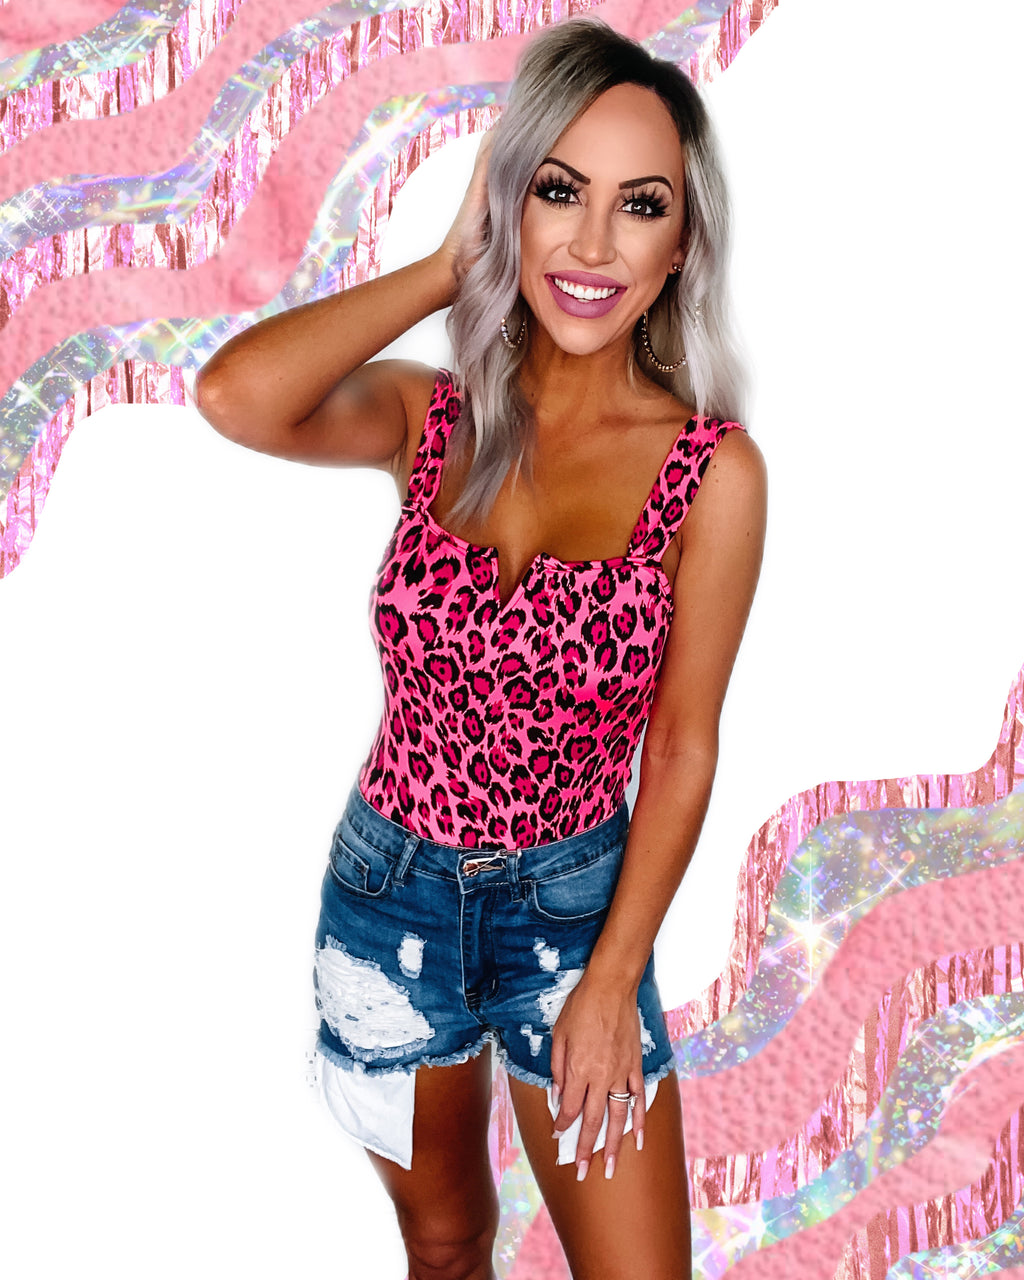 Chase My Heart Cheetah Bodysuit - Neon Pink